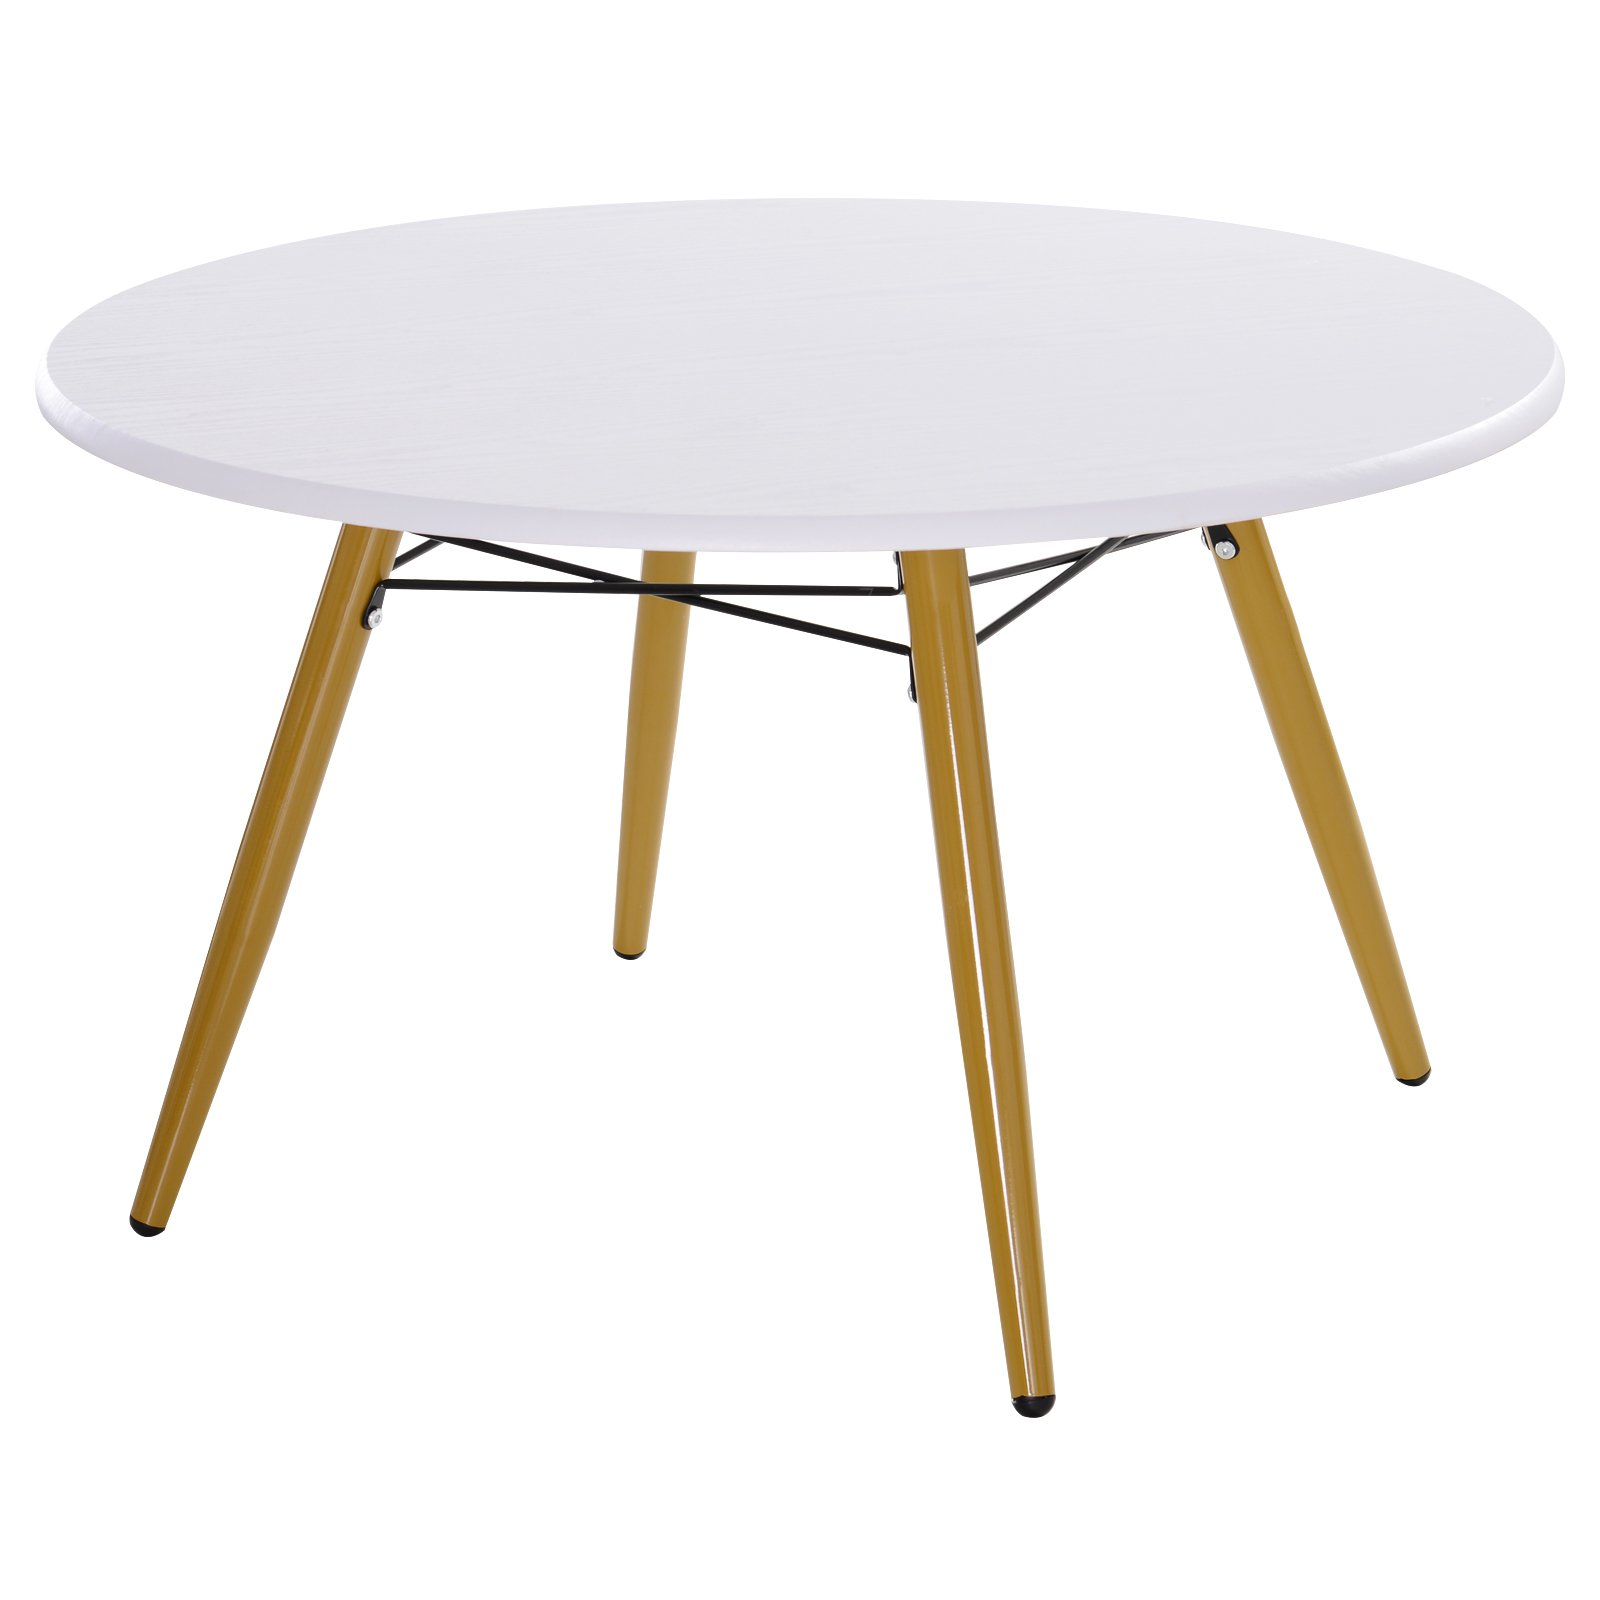 Homcom Table Basse Ronde Design Scandinave en Bois 80 x 80 x 45 cm